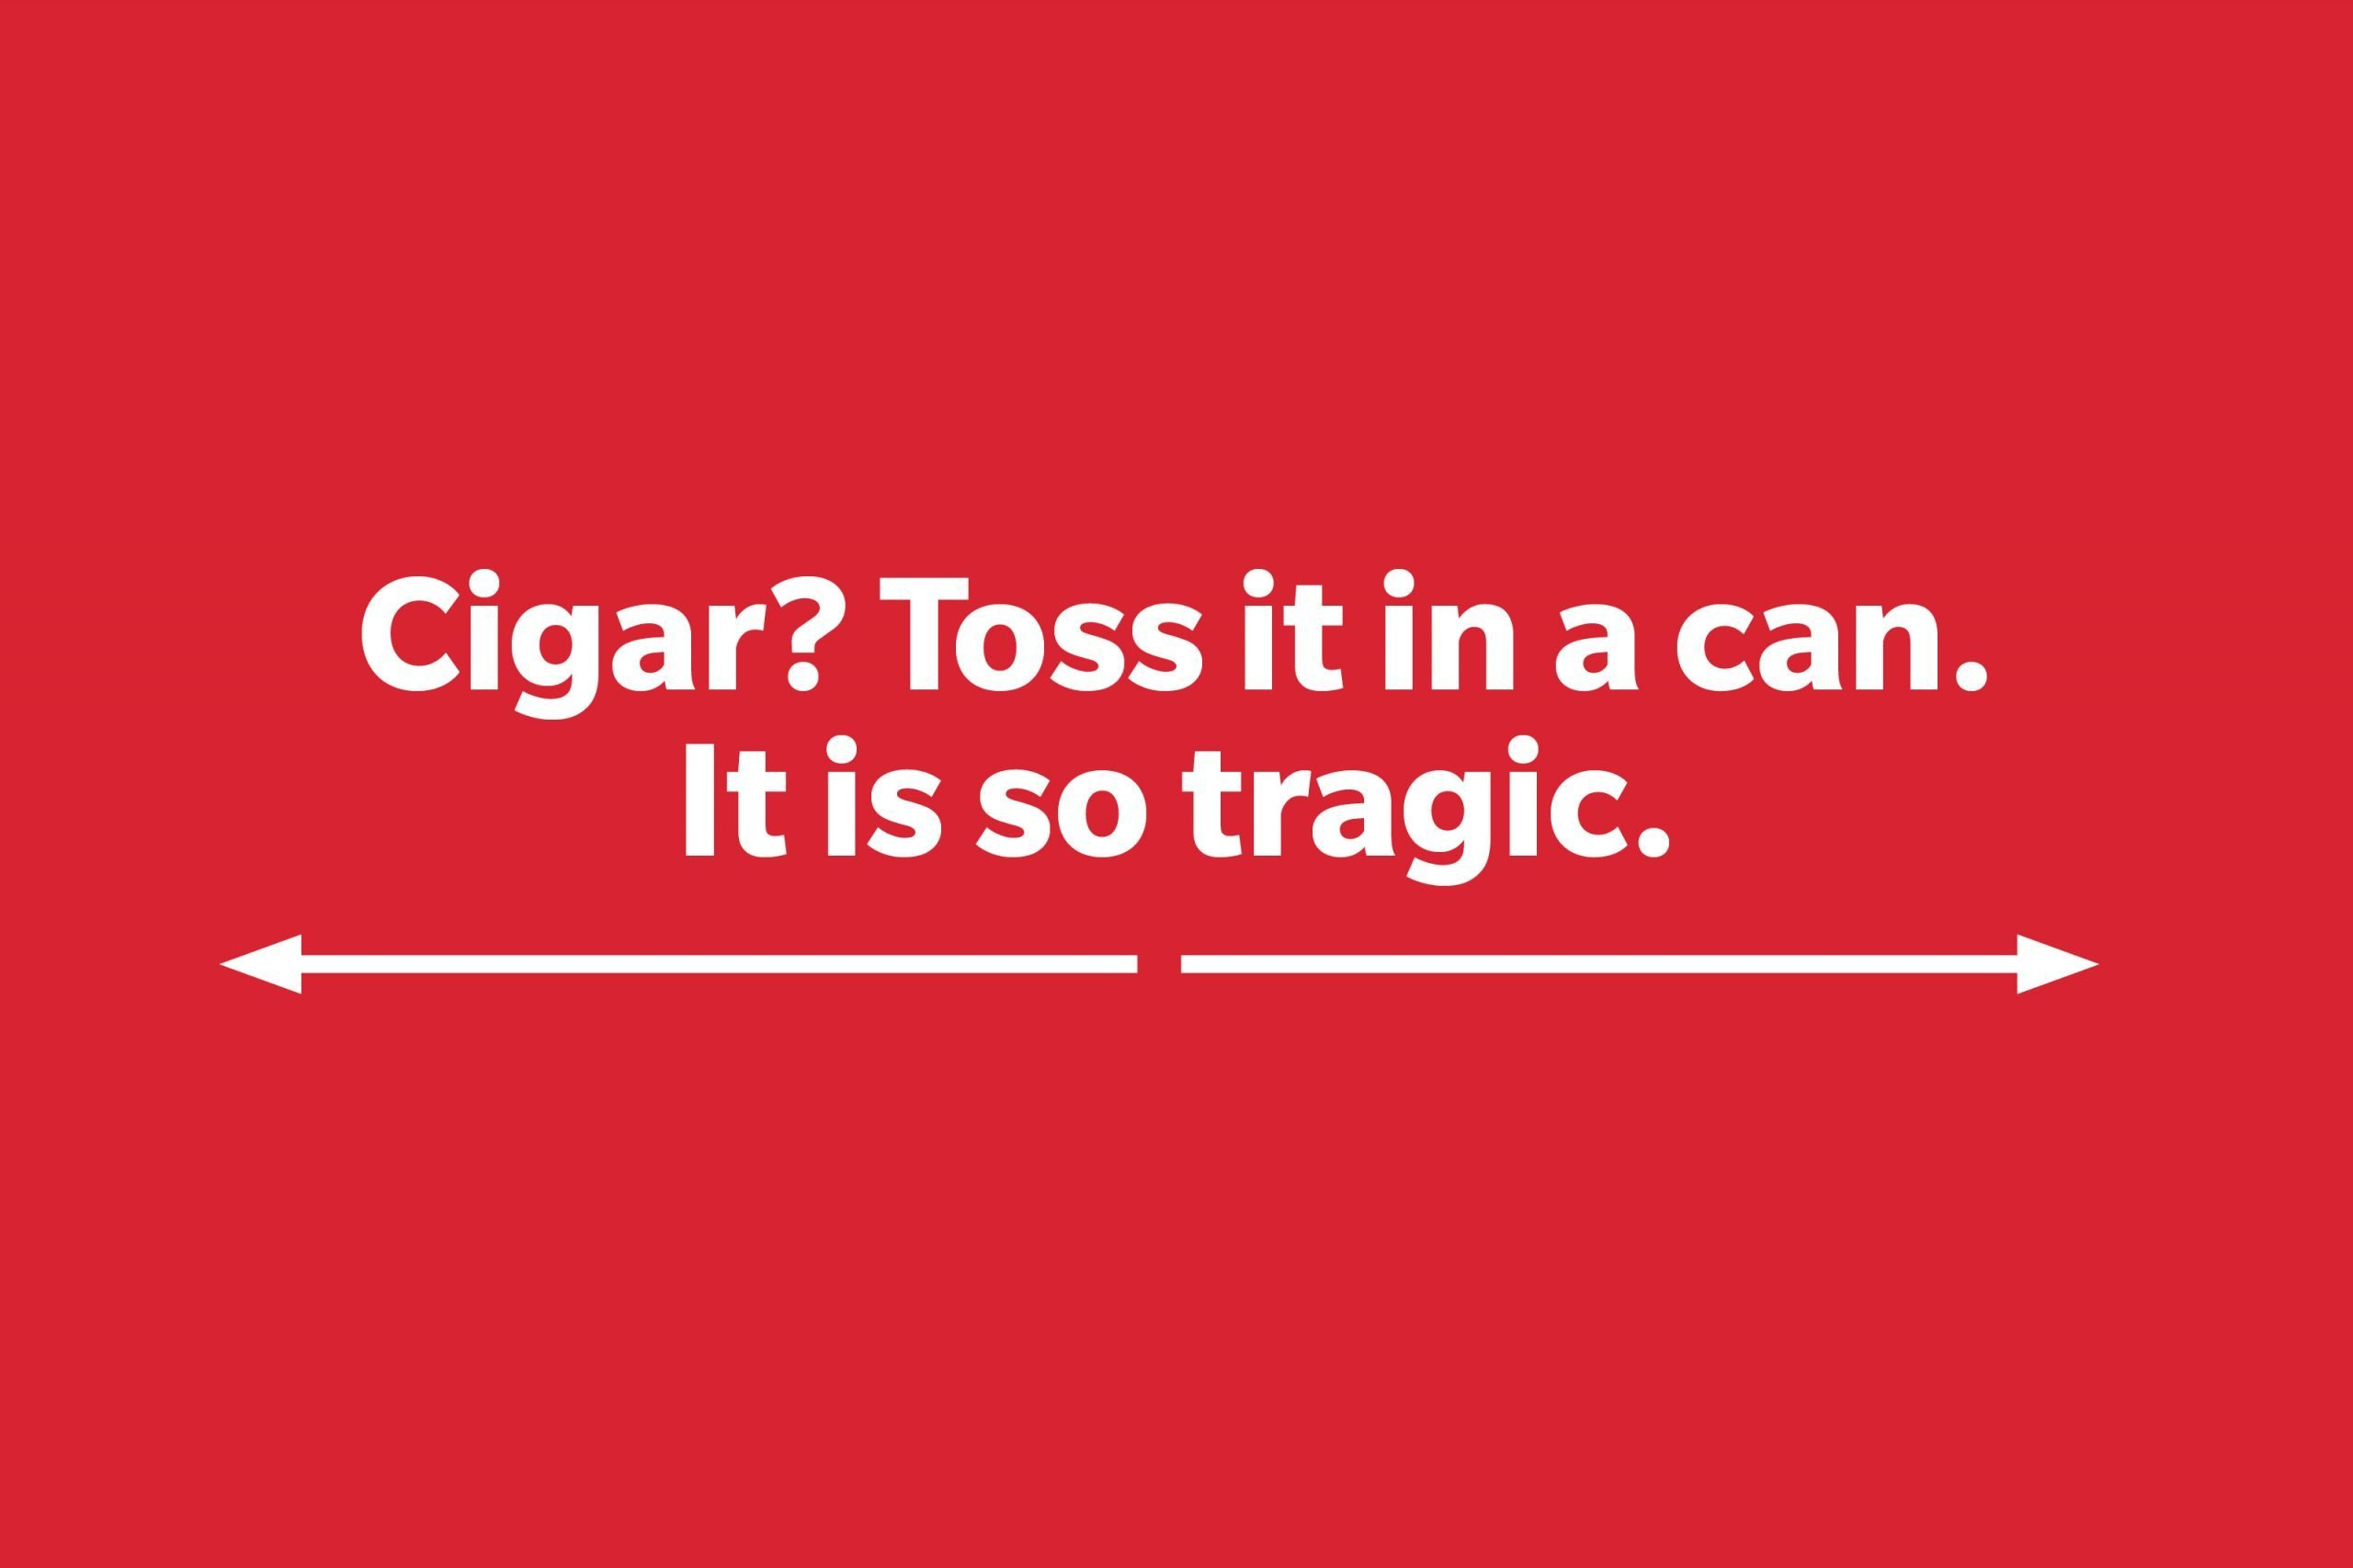 Cigar? Toss it in a can. It is so tragic.